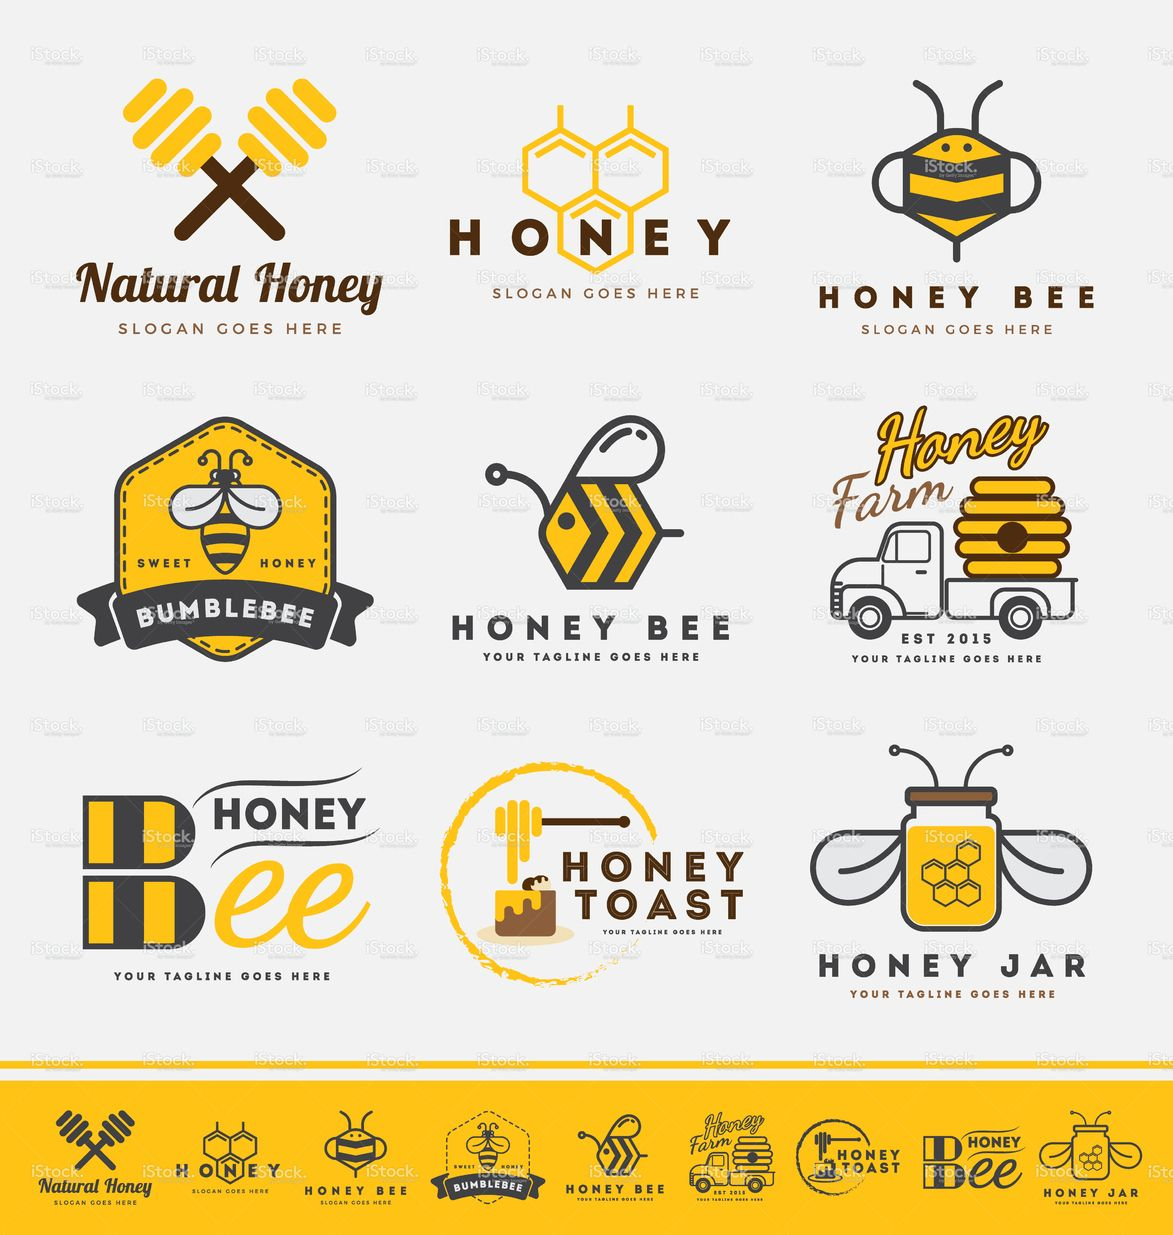 honey bee logo and labels for honey products flat design